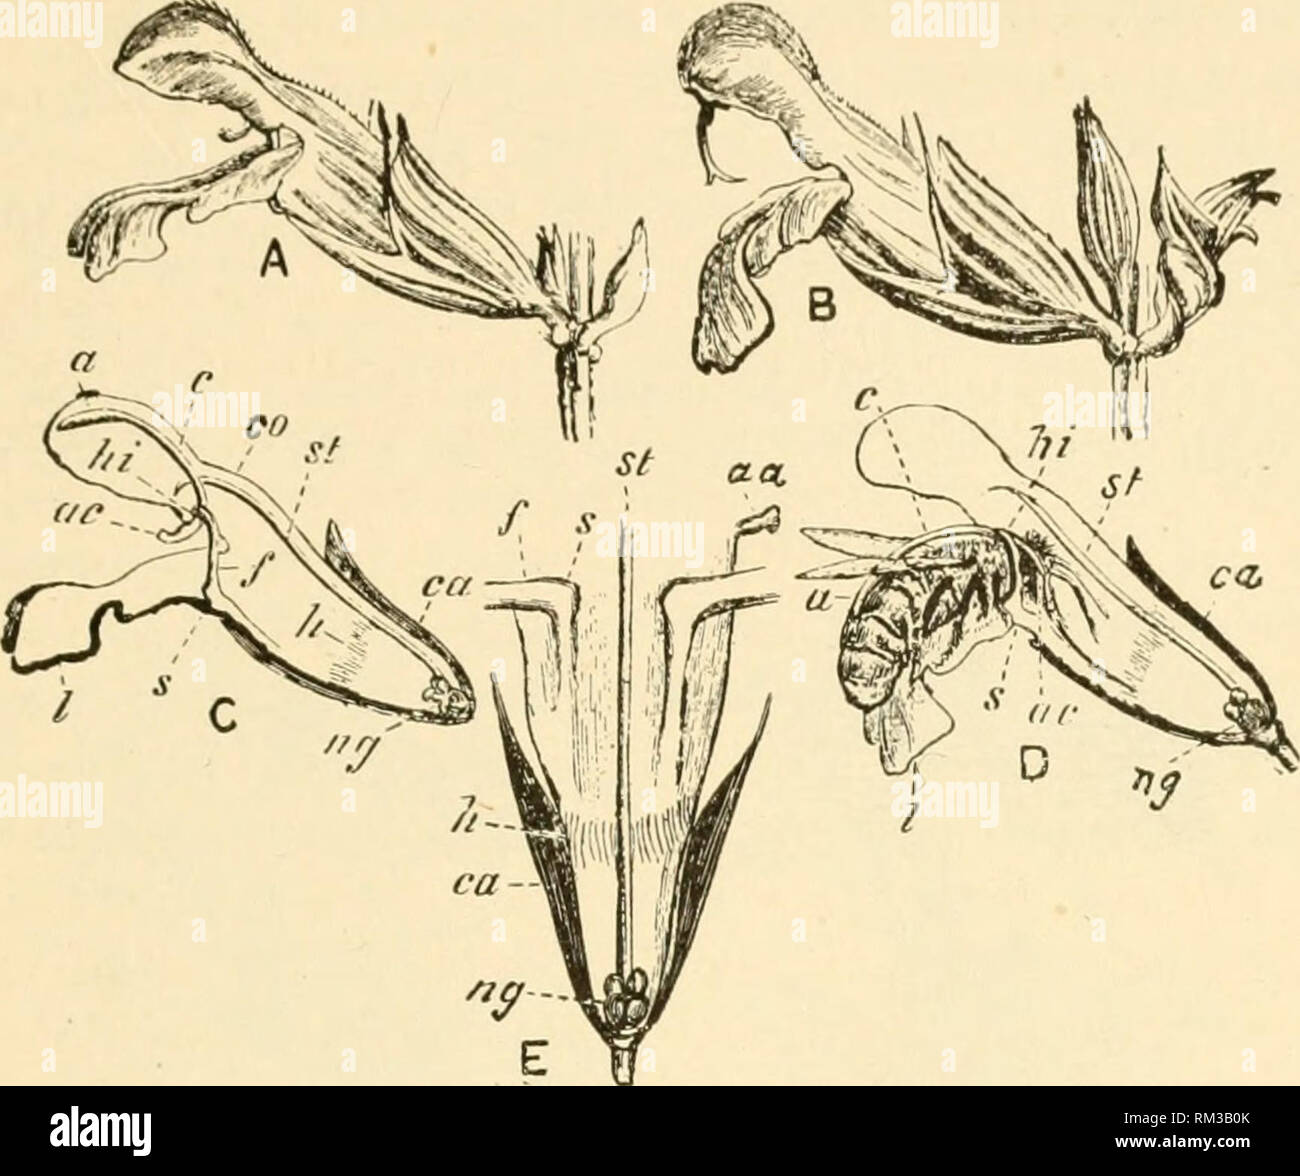 """. Annual report of the Board of Regents of the Smithsonian Institution. Smithsonian Institution; Smithsonian Institution. Archives; Discoveries in science. BEES AND FLOWERS. 478 to ivacli the noctiir (at ikj, fiii"""". 1) \\w Ixv (D) strikes with liis head the short sterile aiMU {ac) whieh aets as a sort of l(>ver to hrino; >lowu the loii<i- arm with its poHen sac {(t) to cover his haelc with the fertile dust. 'V\\\\s laden the l)usy workman (lies to anoth'.'r flower and,. Fig. 1.—Flower of Salvia ojficinalis. (.From Cheshire: Bees and Bee-keeping.) A. Yoiing flower, showing an atro Stock Photo"""